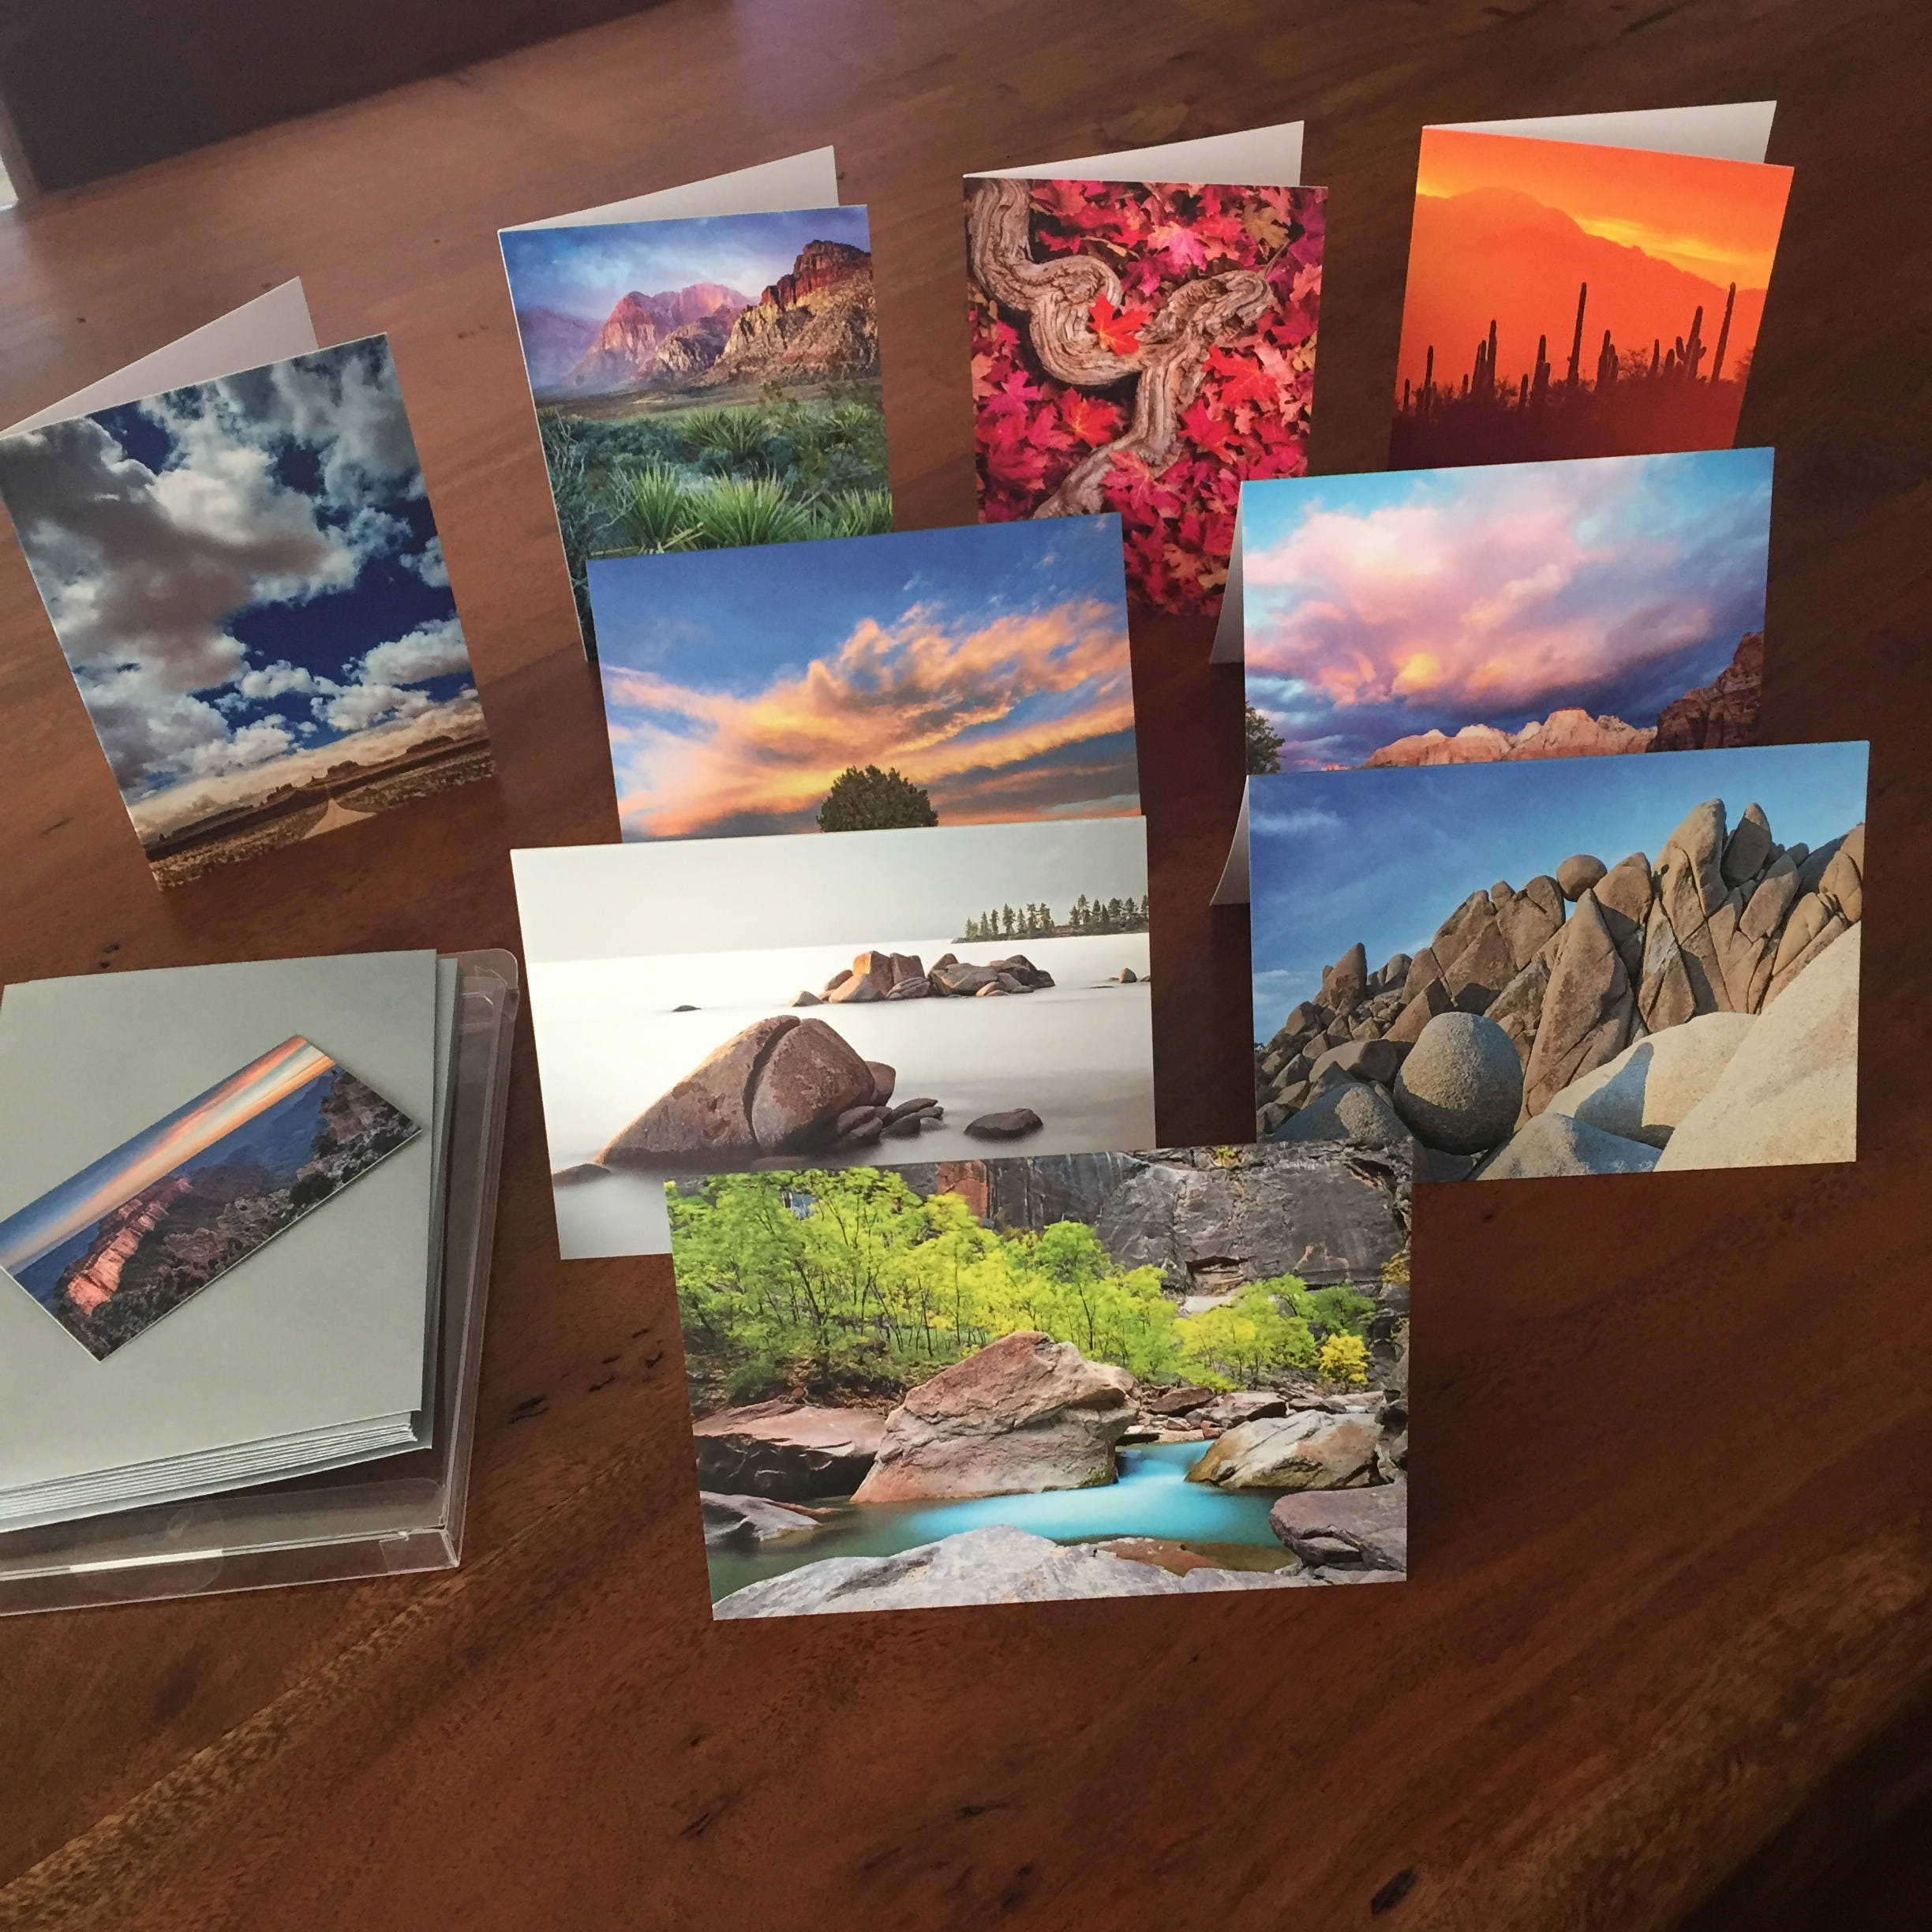 Set of 9 blank 4x6 inch greeting cards with silver envelopes of set of 9 blank 4x6 inch greeting cards with silver envelopes of nature and landscape photography kristyandbryce Image collections